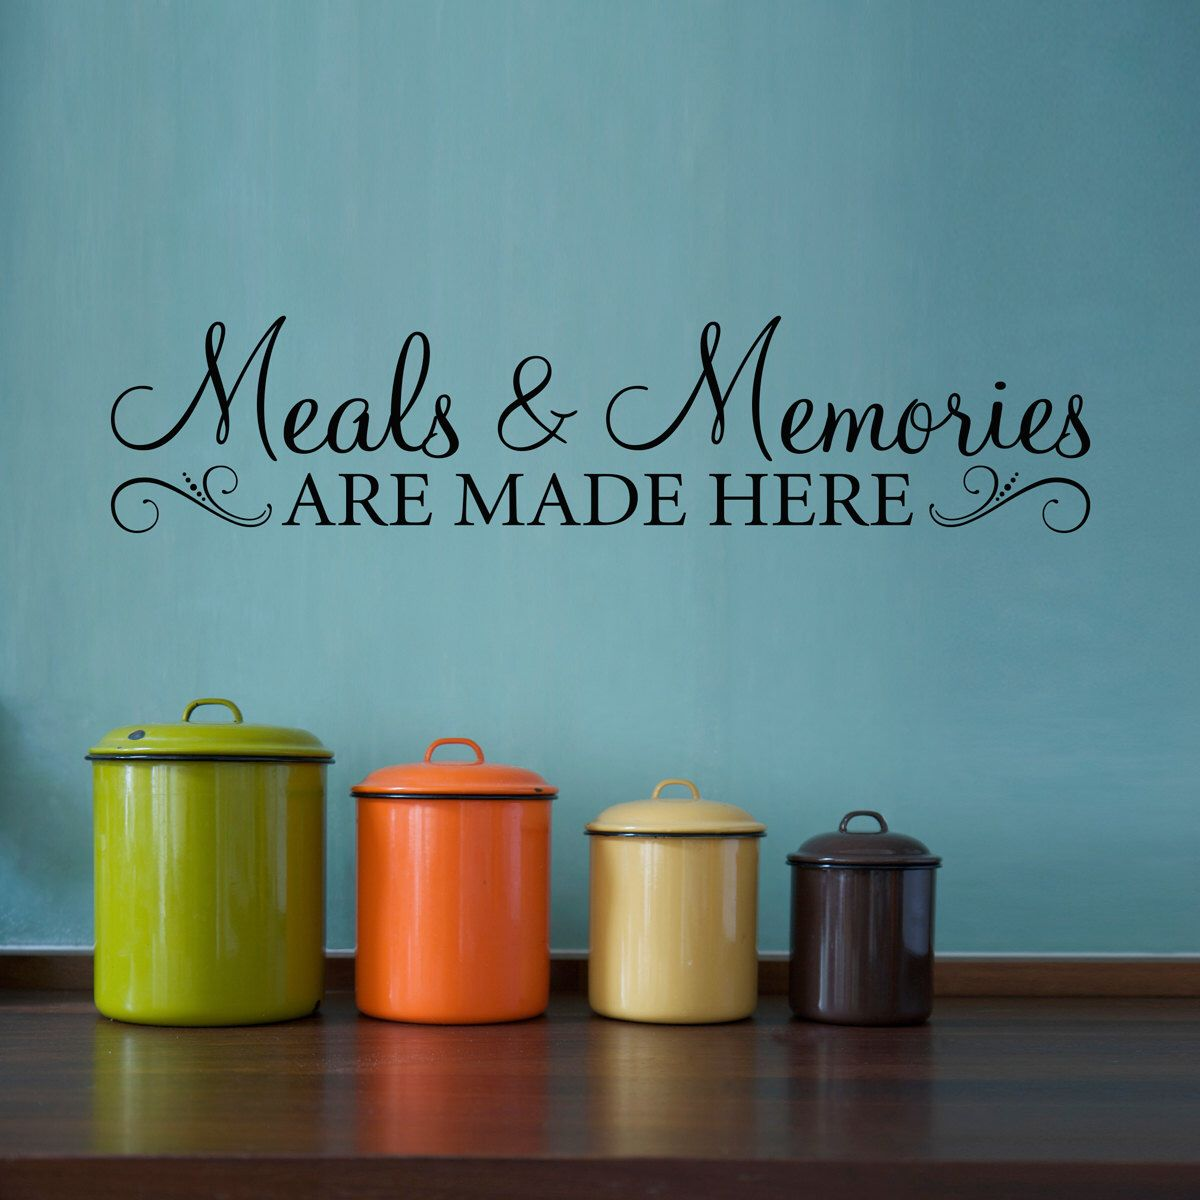 meals memories decal kitchen quote wall decal meals and memories are made here wall on kitchen decor quotes wall decals id=42458